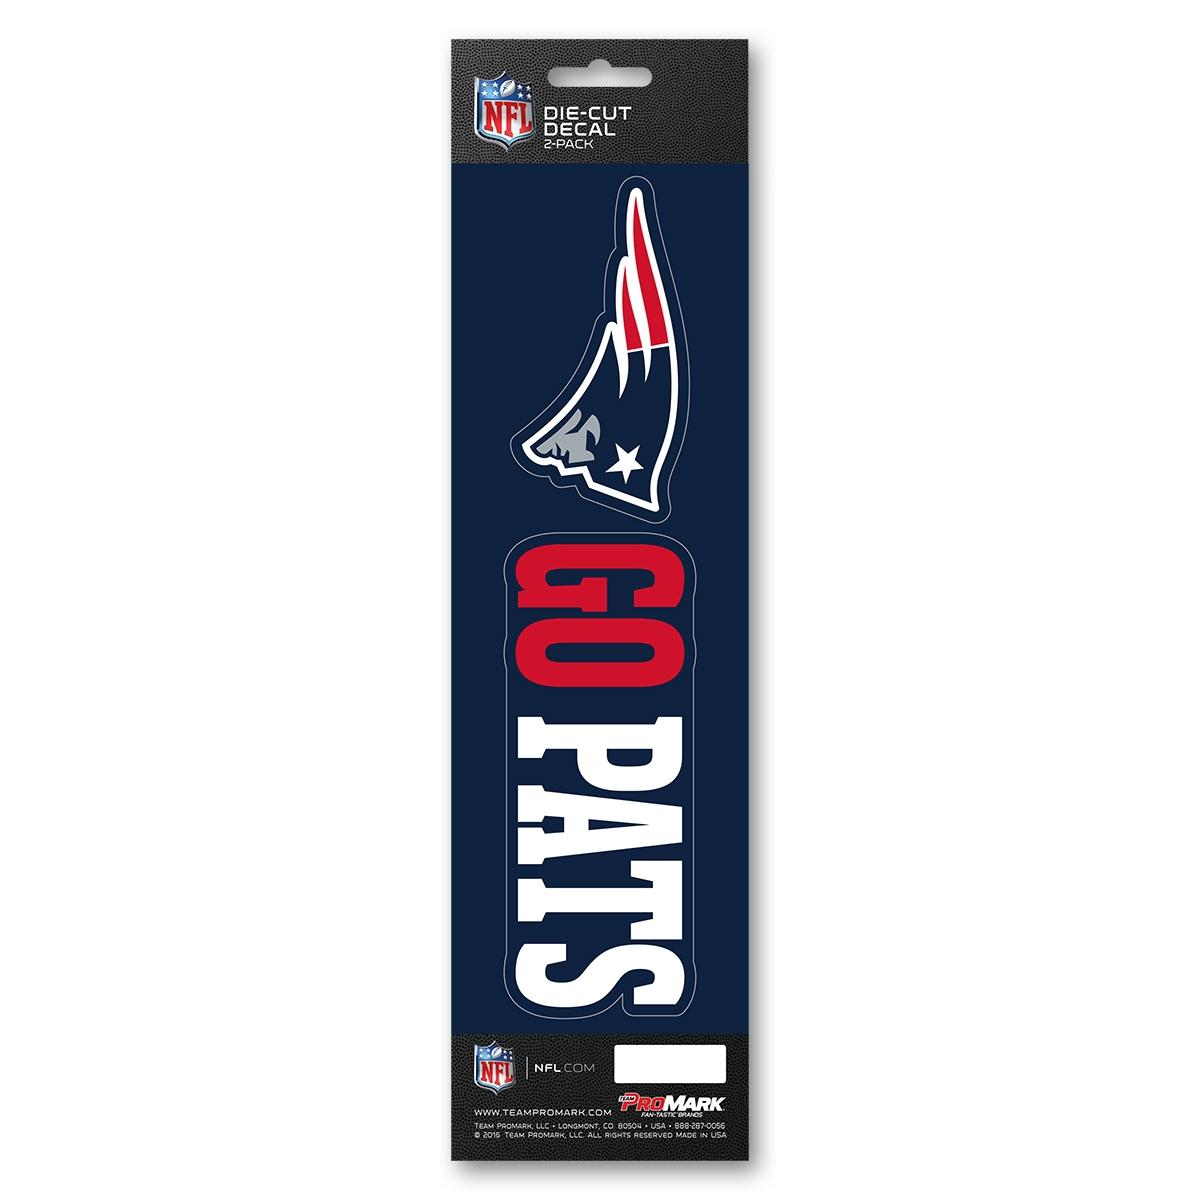 Nfl Football New England Patriots Decals - 8162029118 - New England Patriots Decal Die Cut Slogan Pack 8162029118